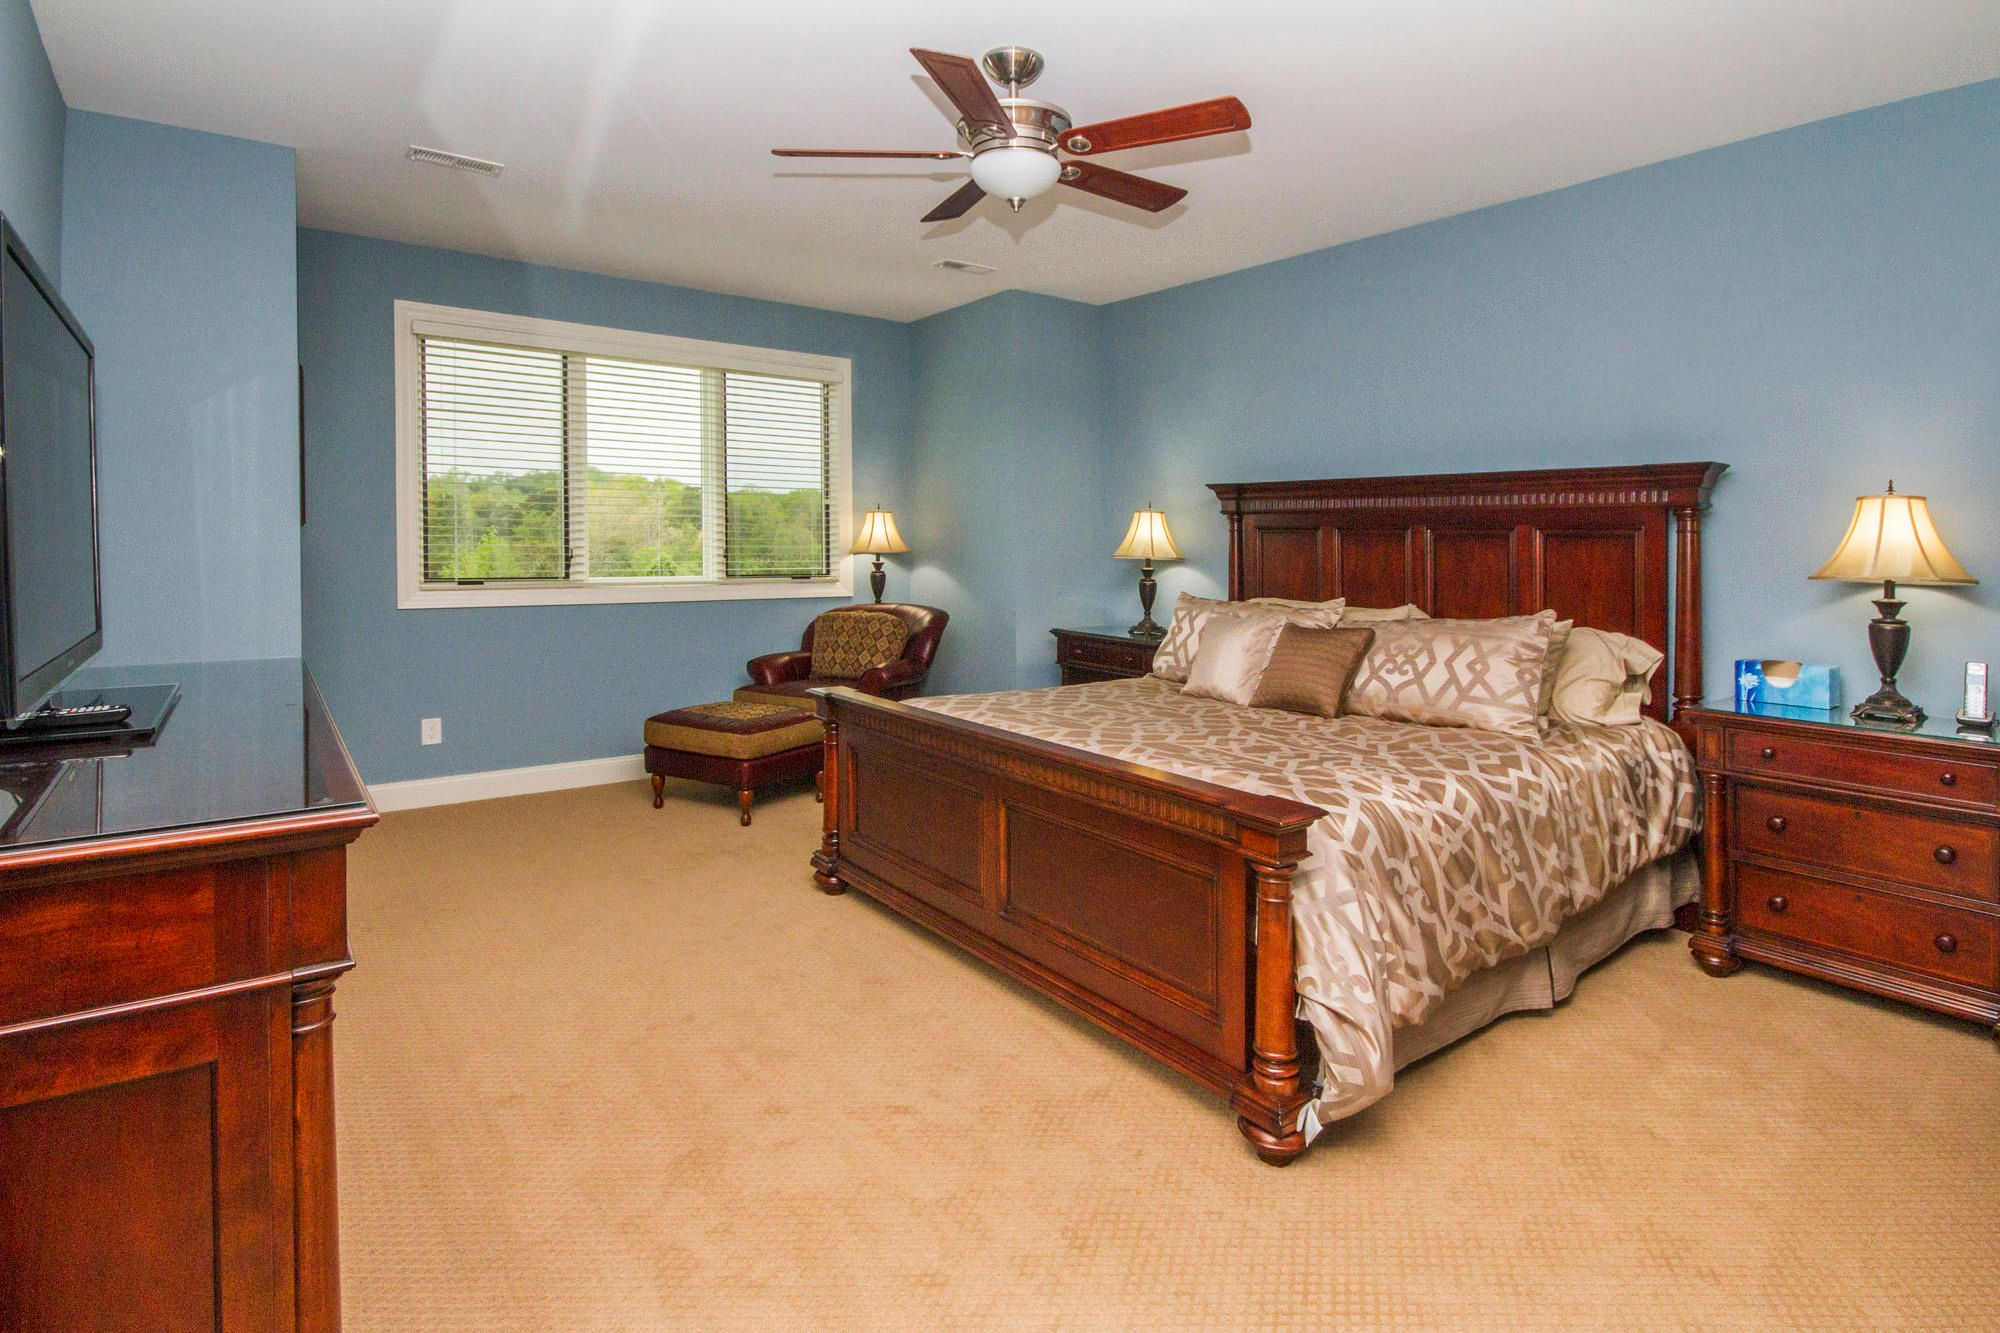 Guest Suite 1 is a 2nd Master Suite